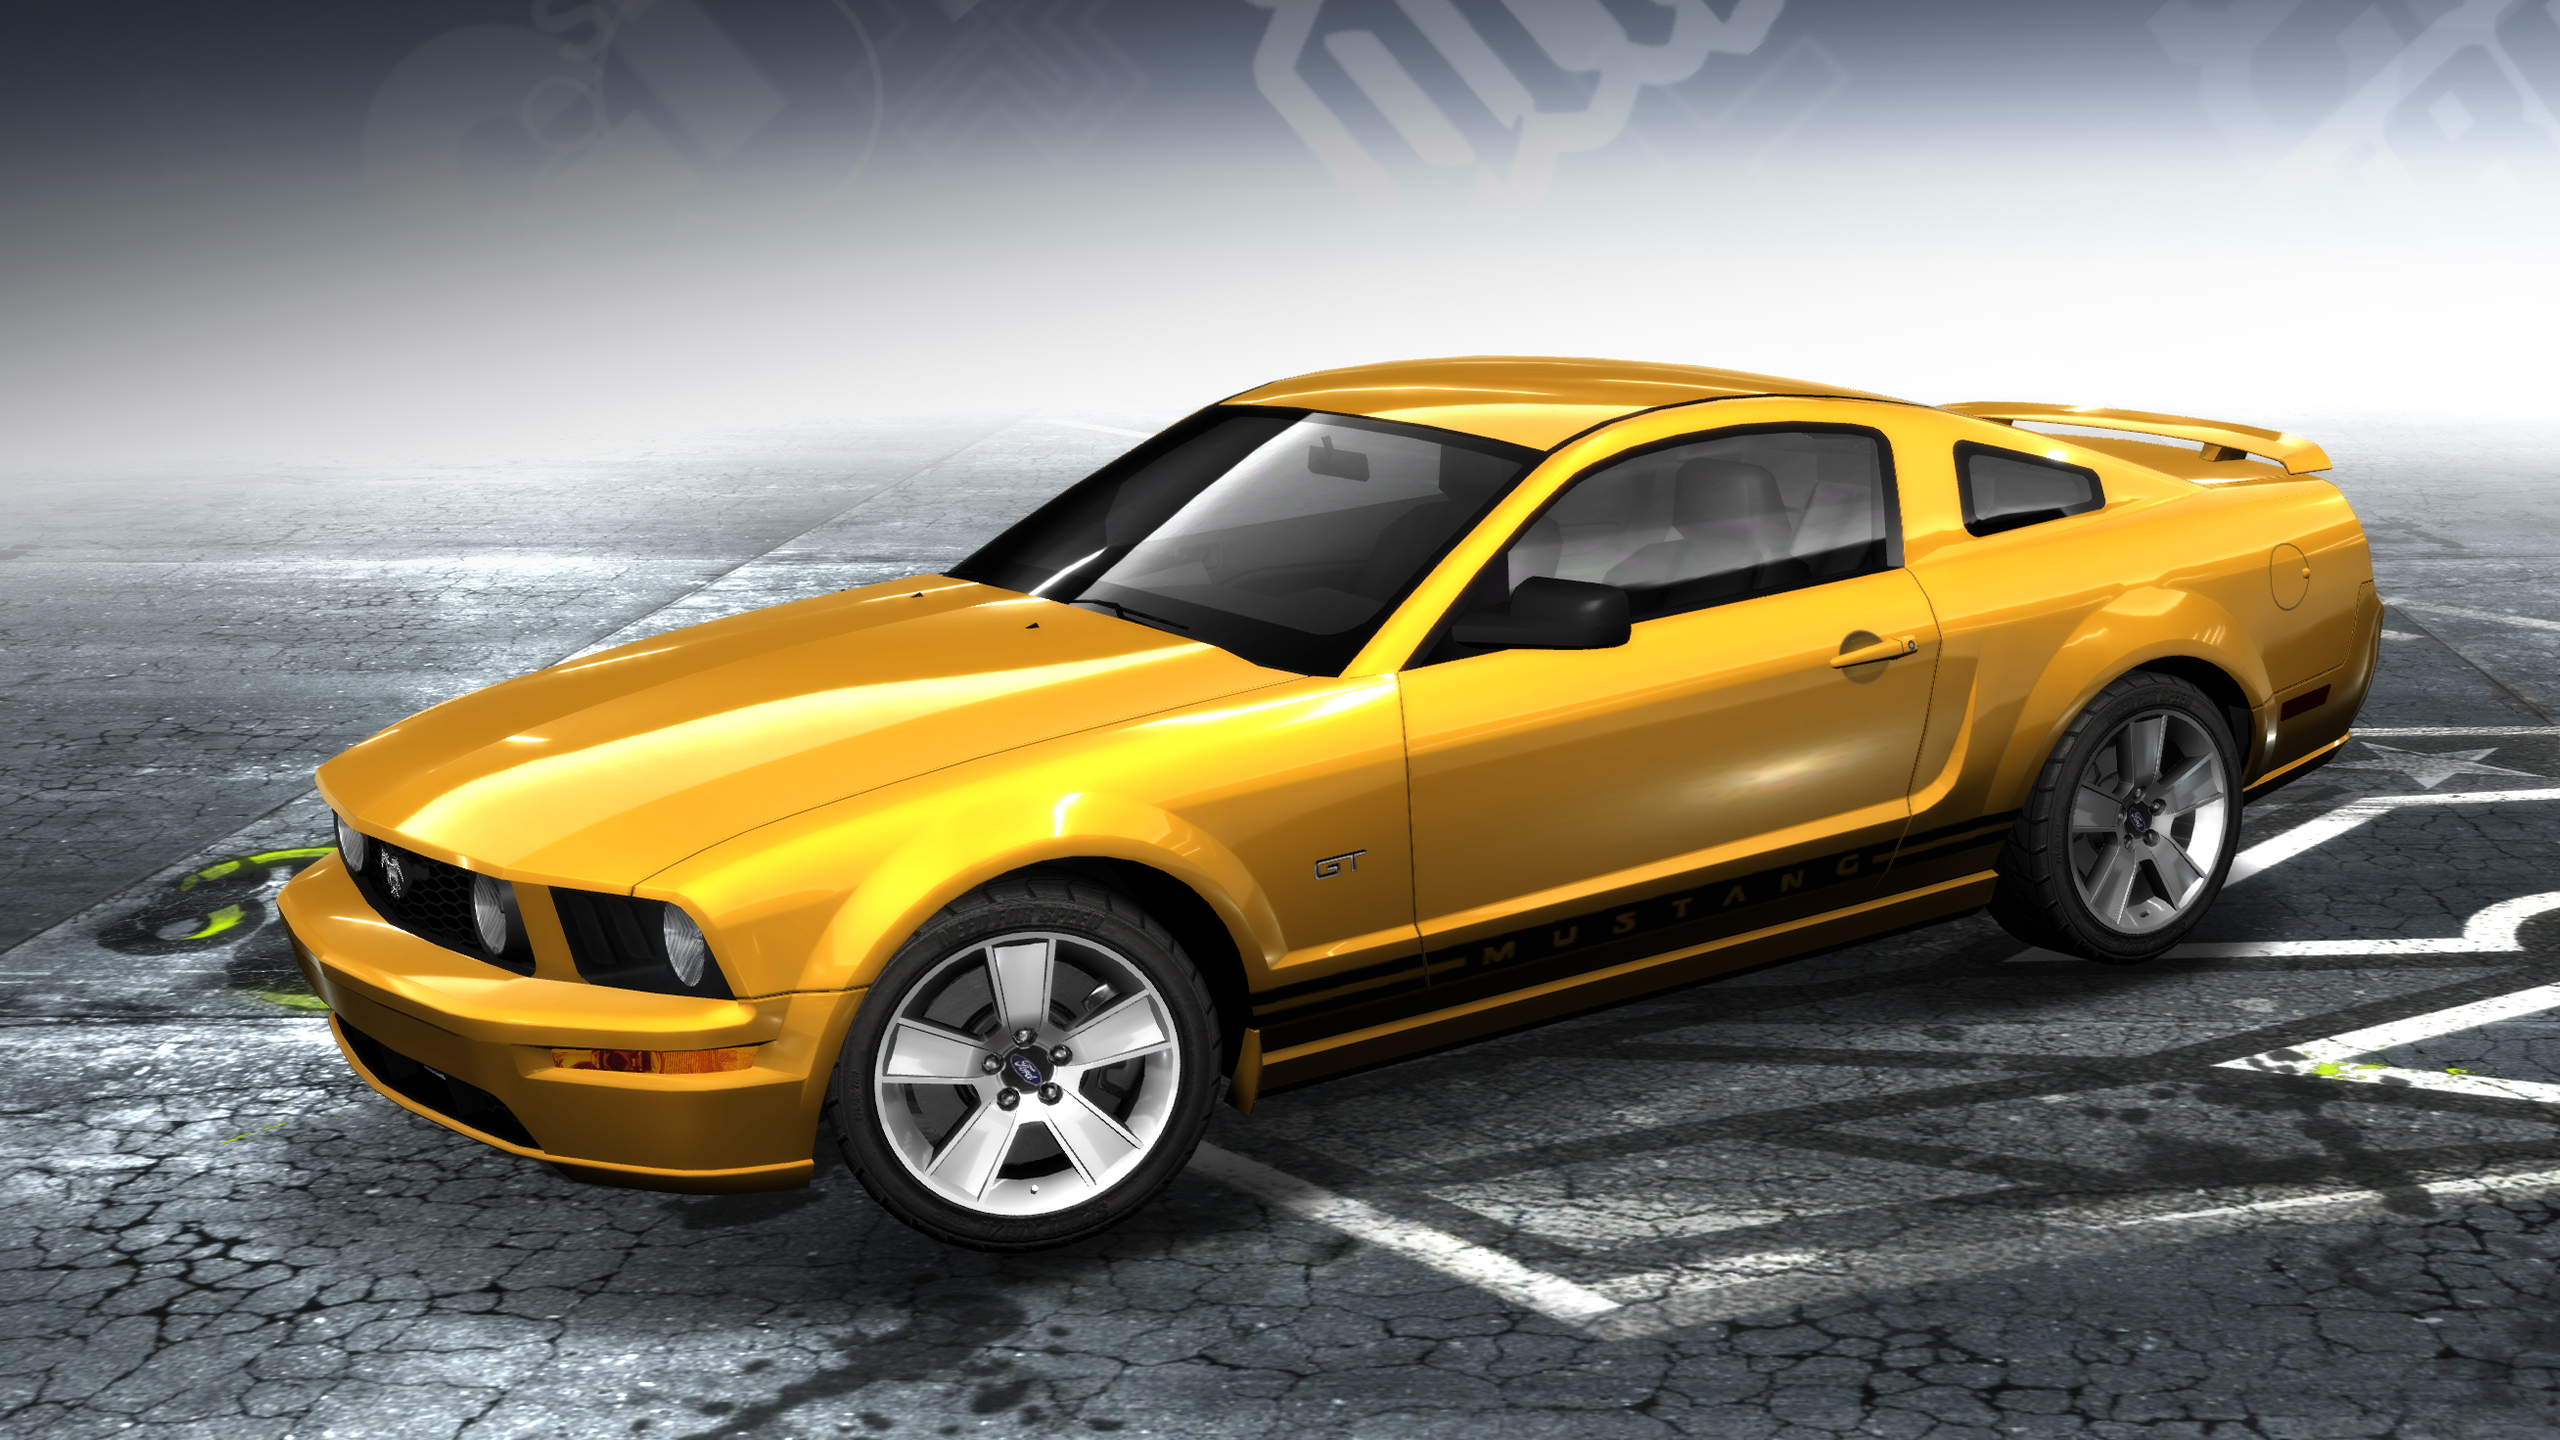 ford mustang gt 2005 need for speed wiki fandom powered by wikia. Black Bedroom Furniture Sets. Home Design Ideas